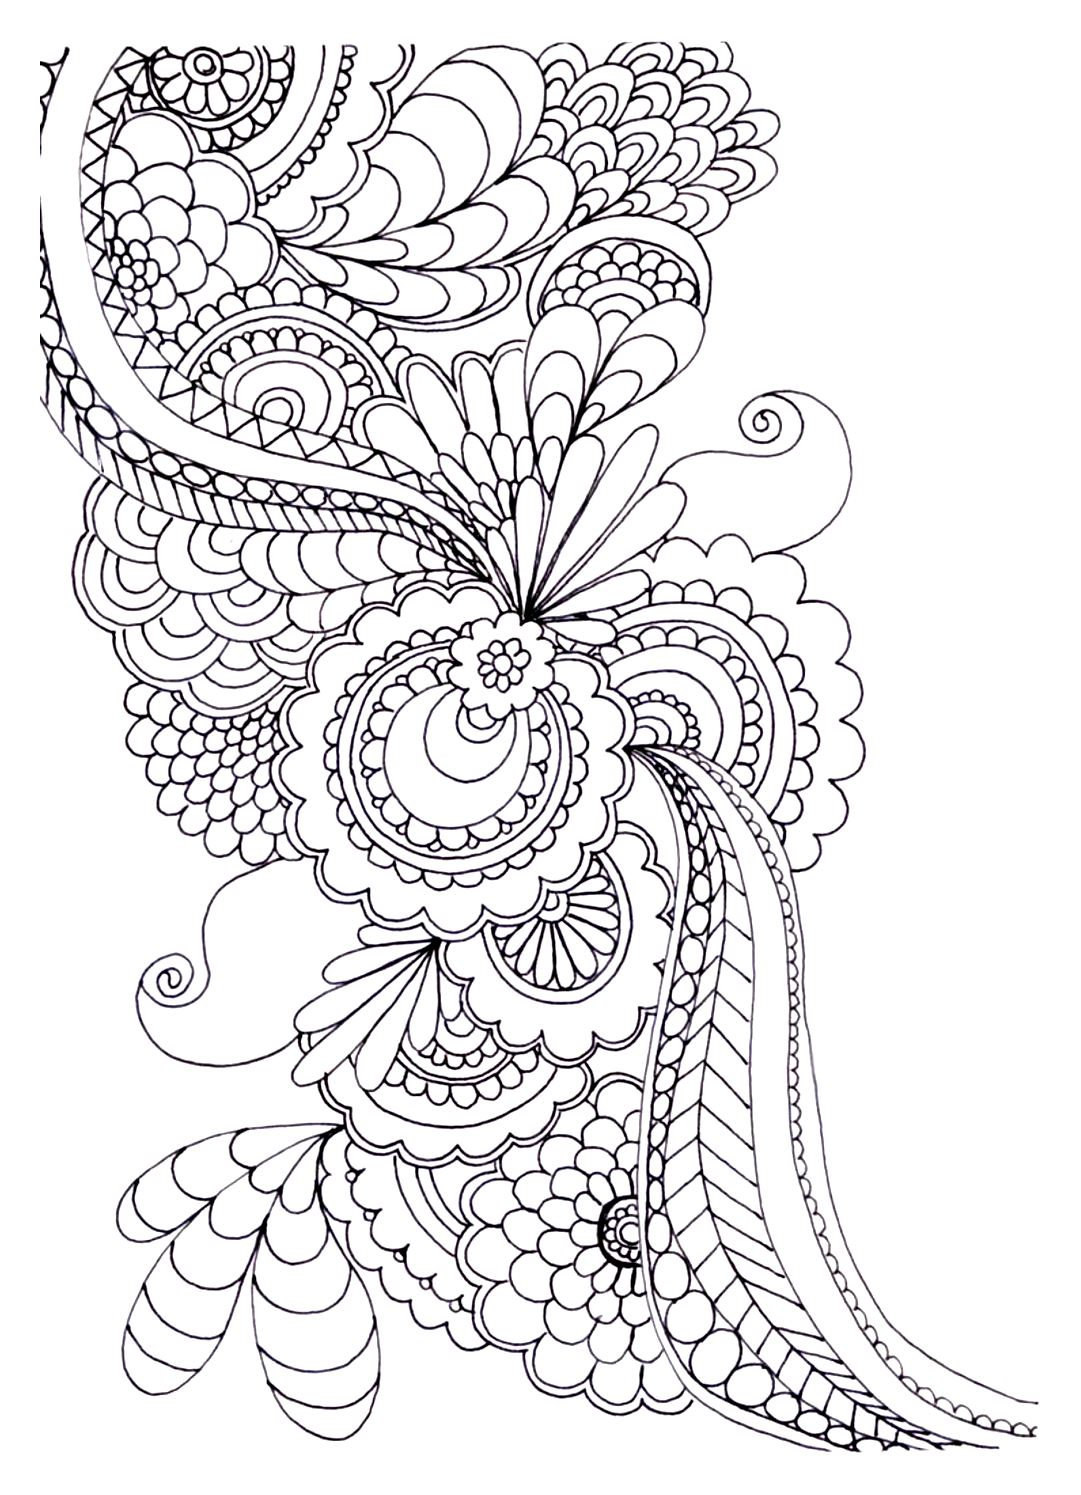 aduly coloring pages - photo#13